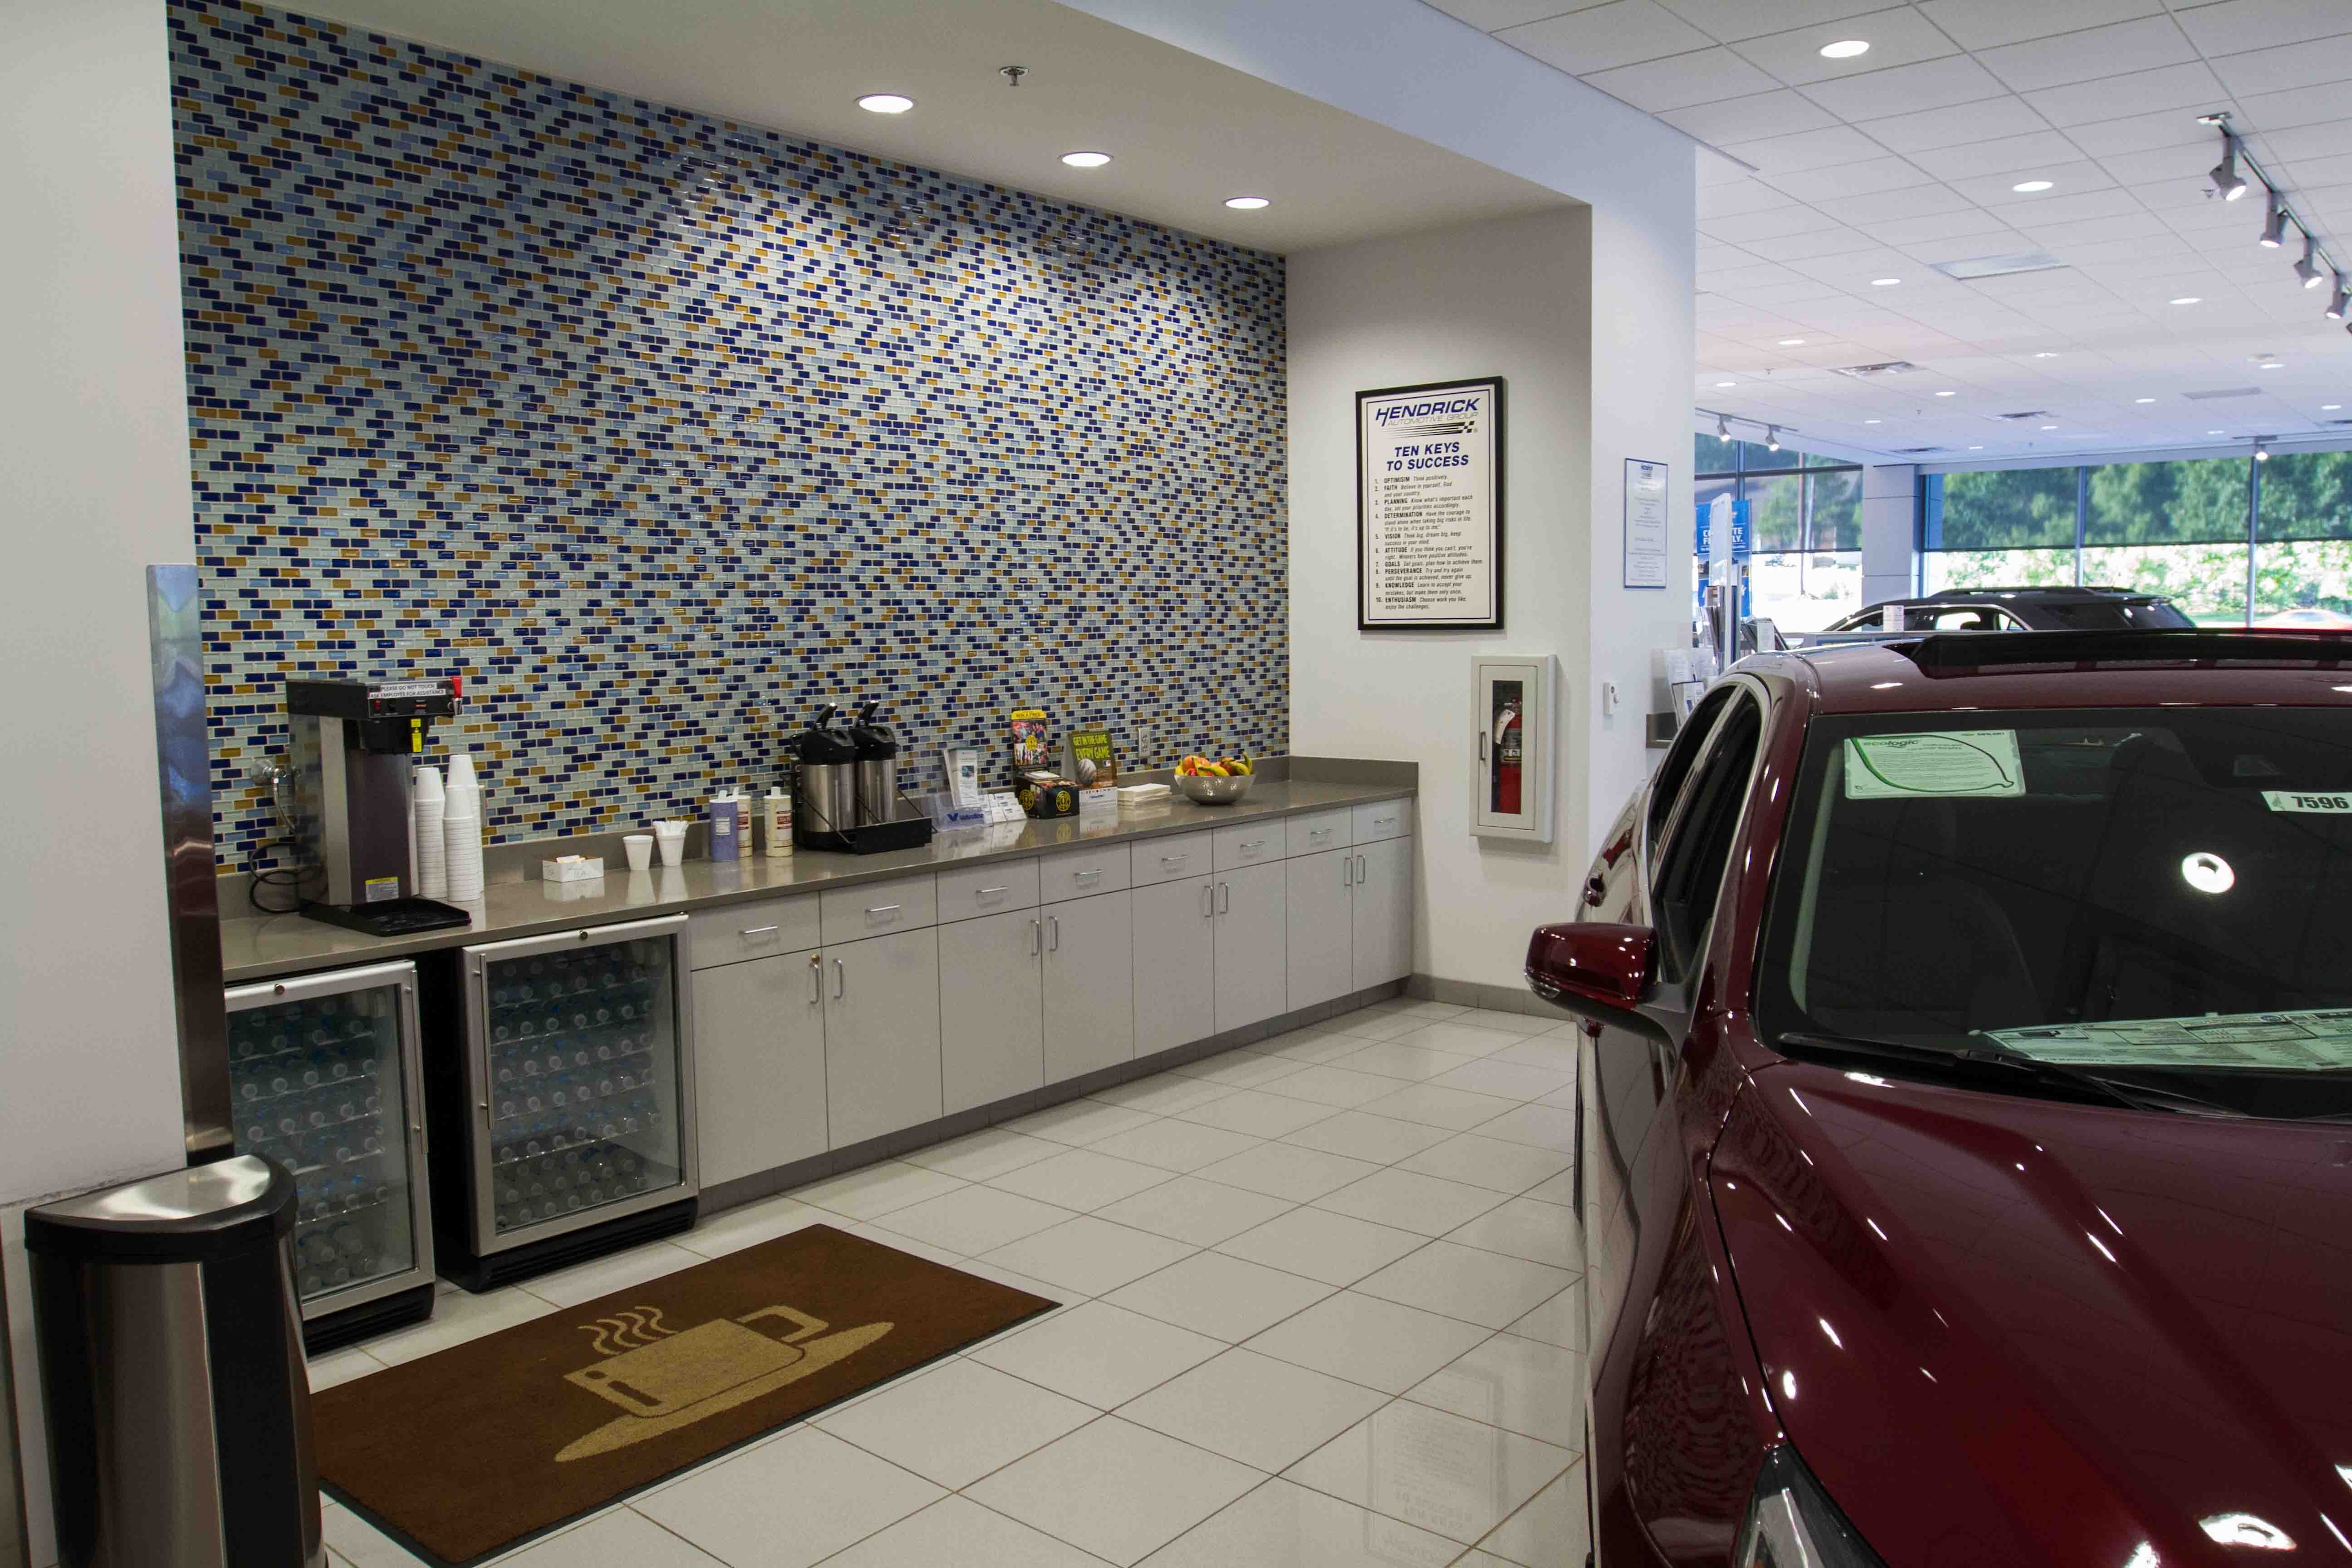 About Hendrick Chevrolet Shawnee Mission Serving Kansas City